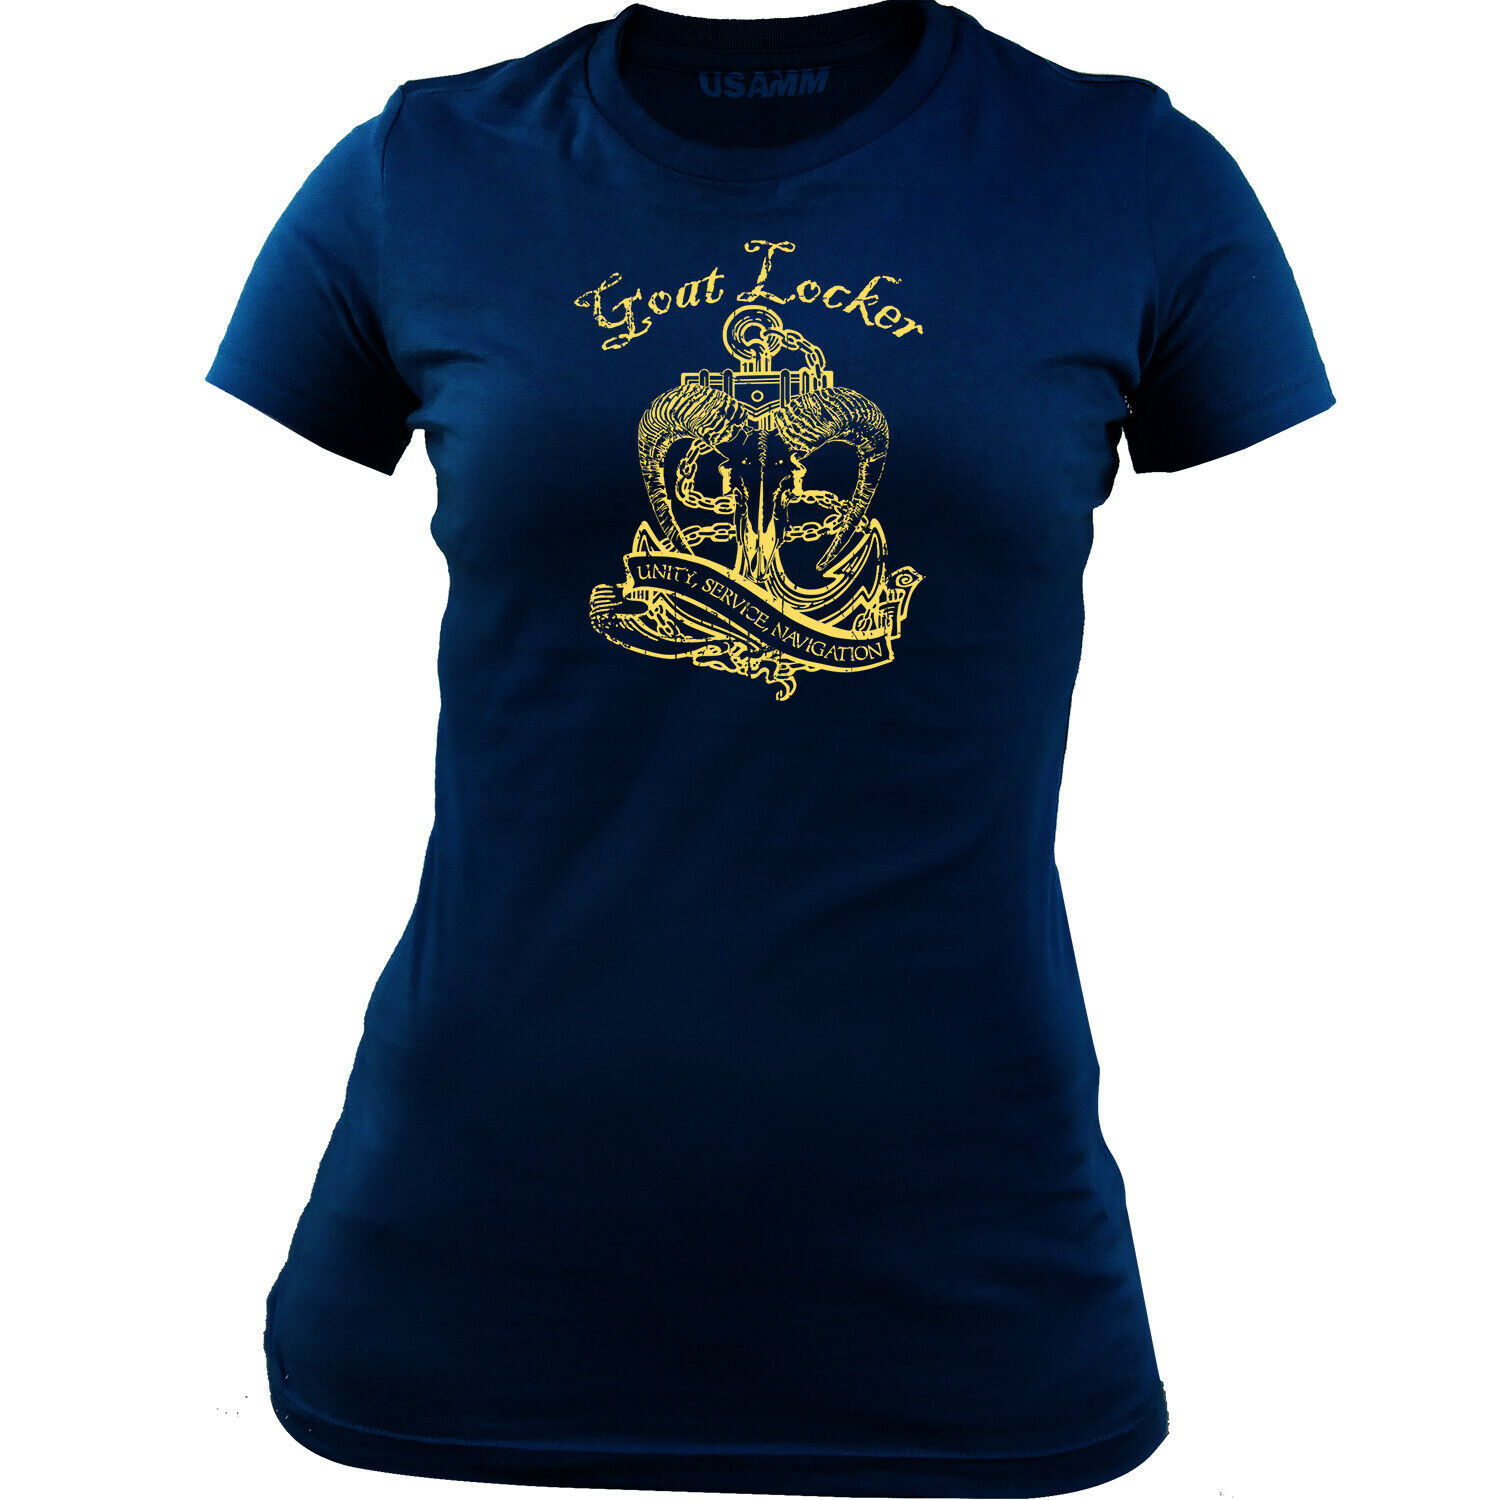 Primary image for Women's Navy Goat Locker Chief CPO T-Shirt